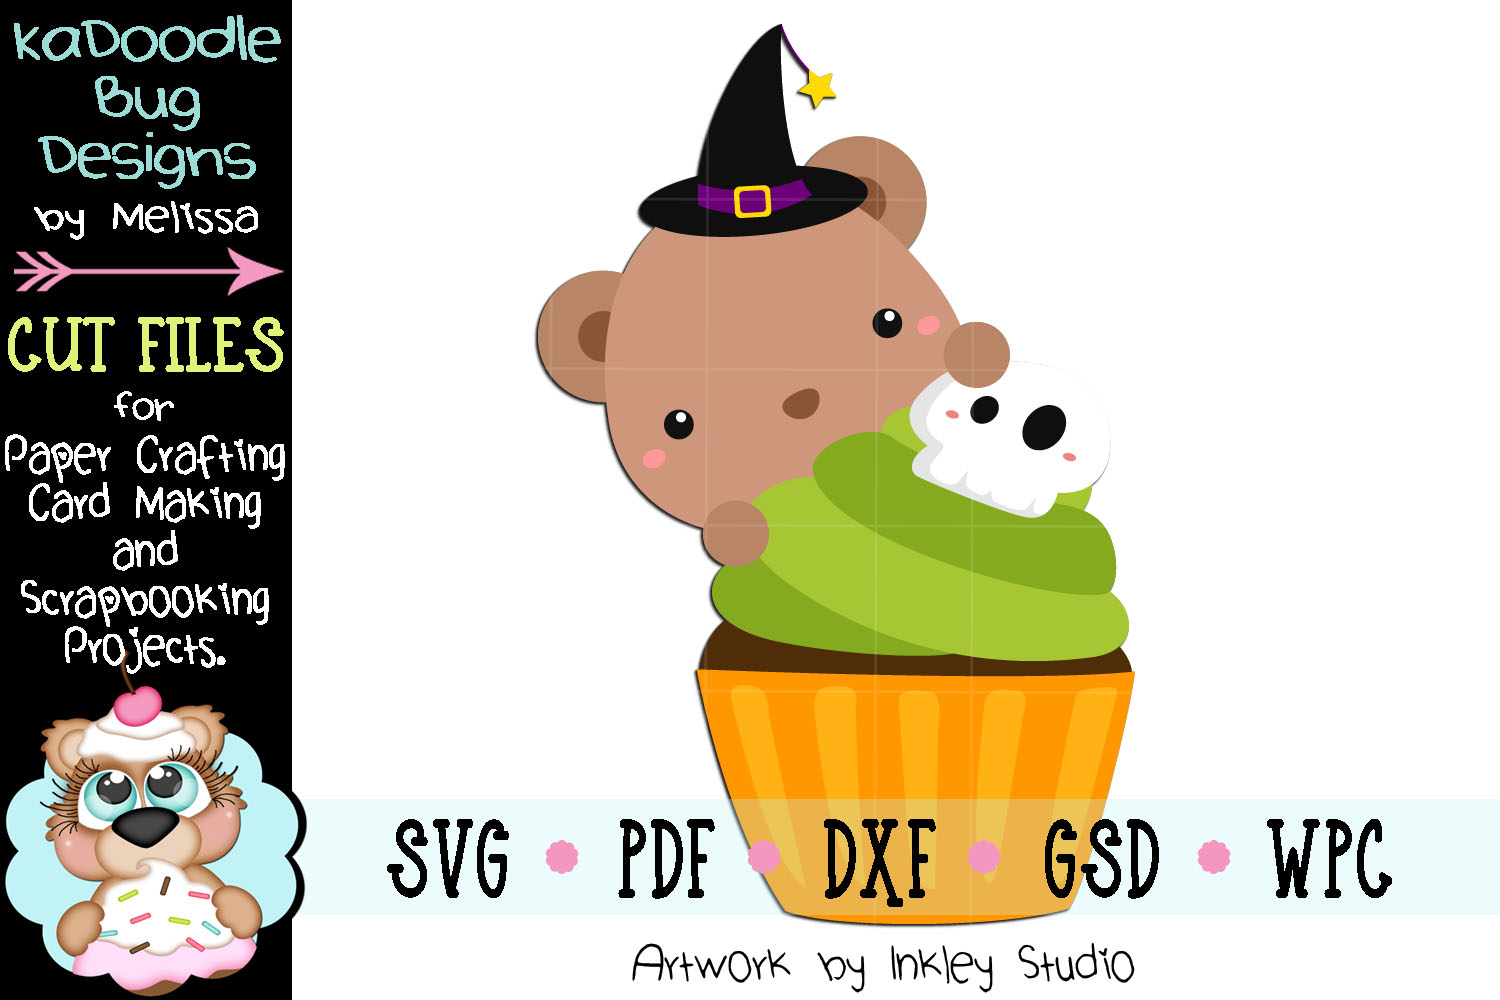 Halloween Cupcake Bear Cut File - SVG PDF DXF GSD WPC example image 1